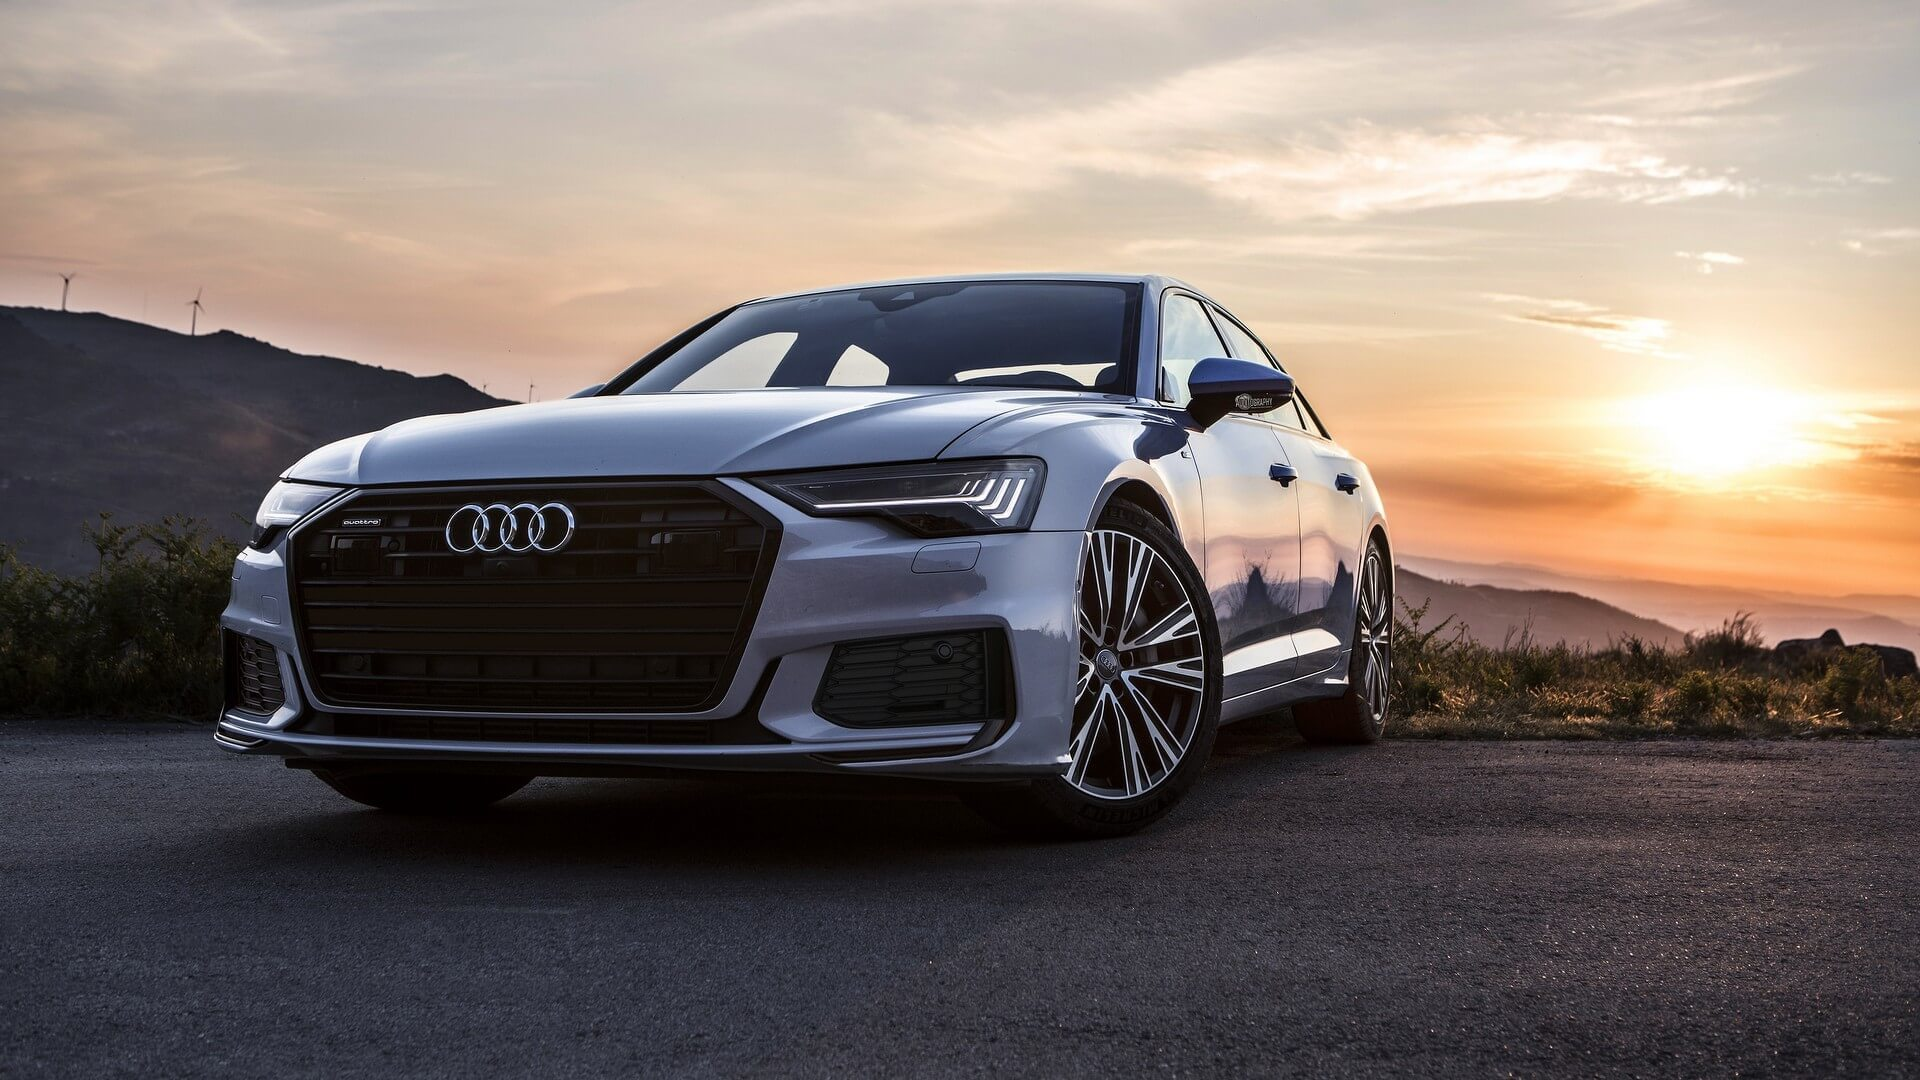 Audi A6 Beauty Shots Might Steer You Away From Buying A 5 Series Audi a6l 55 tfsi quattro s line